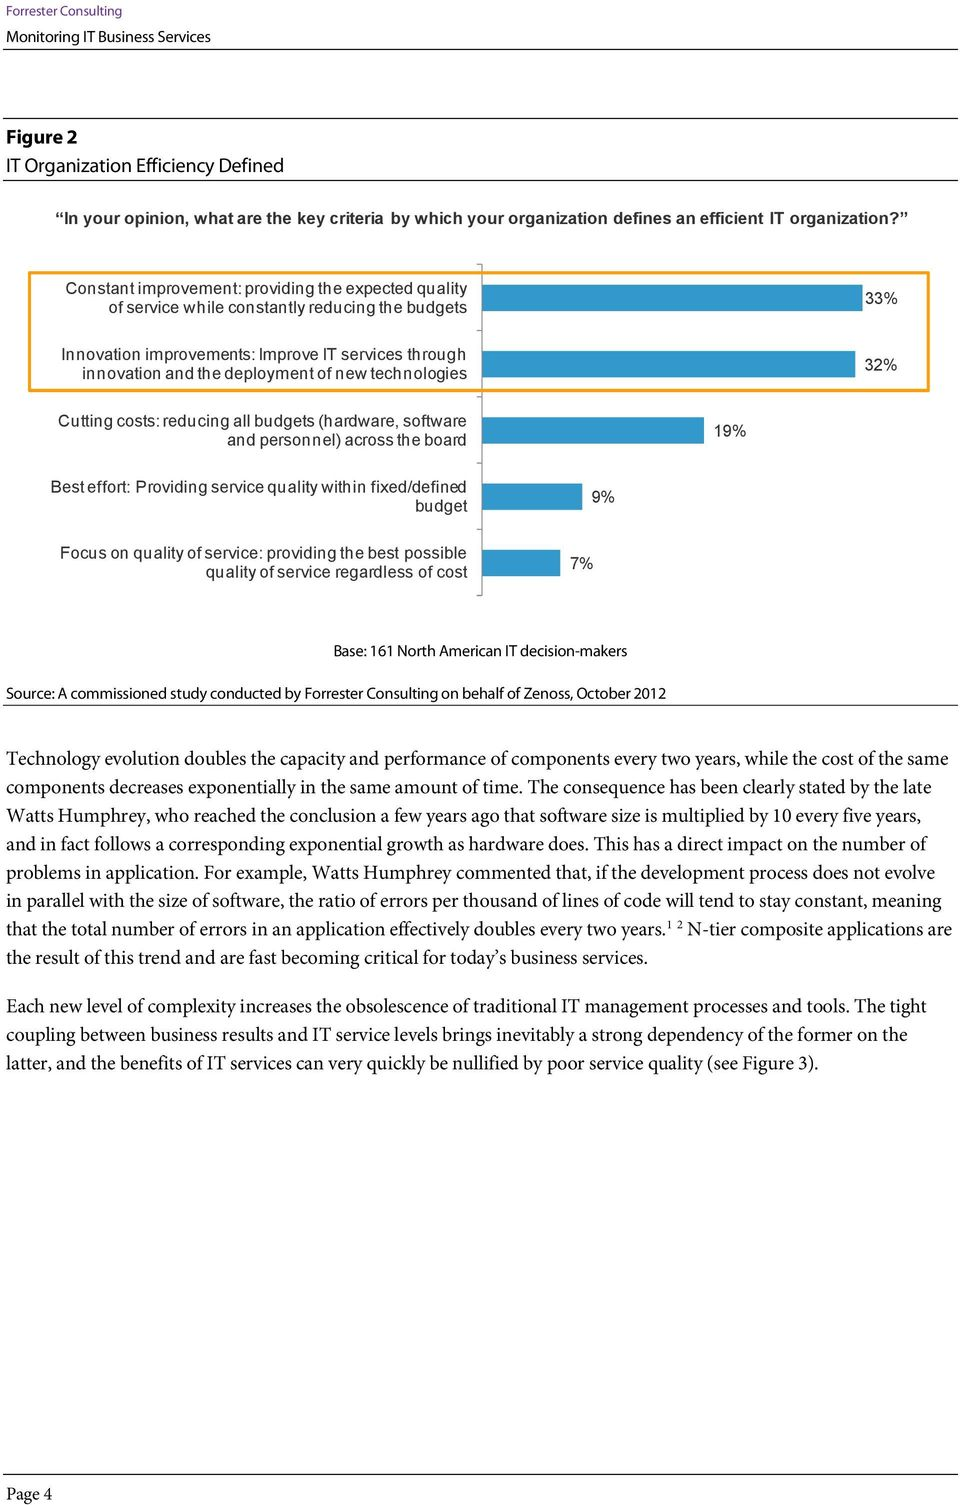 technologies 32% Cutting costs: reducing all budgets (hardware, software and personnel) across the board 19% Best effort: Providing service quality within fixed/defined budget 9% Focus on quality of